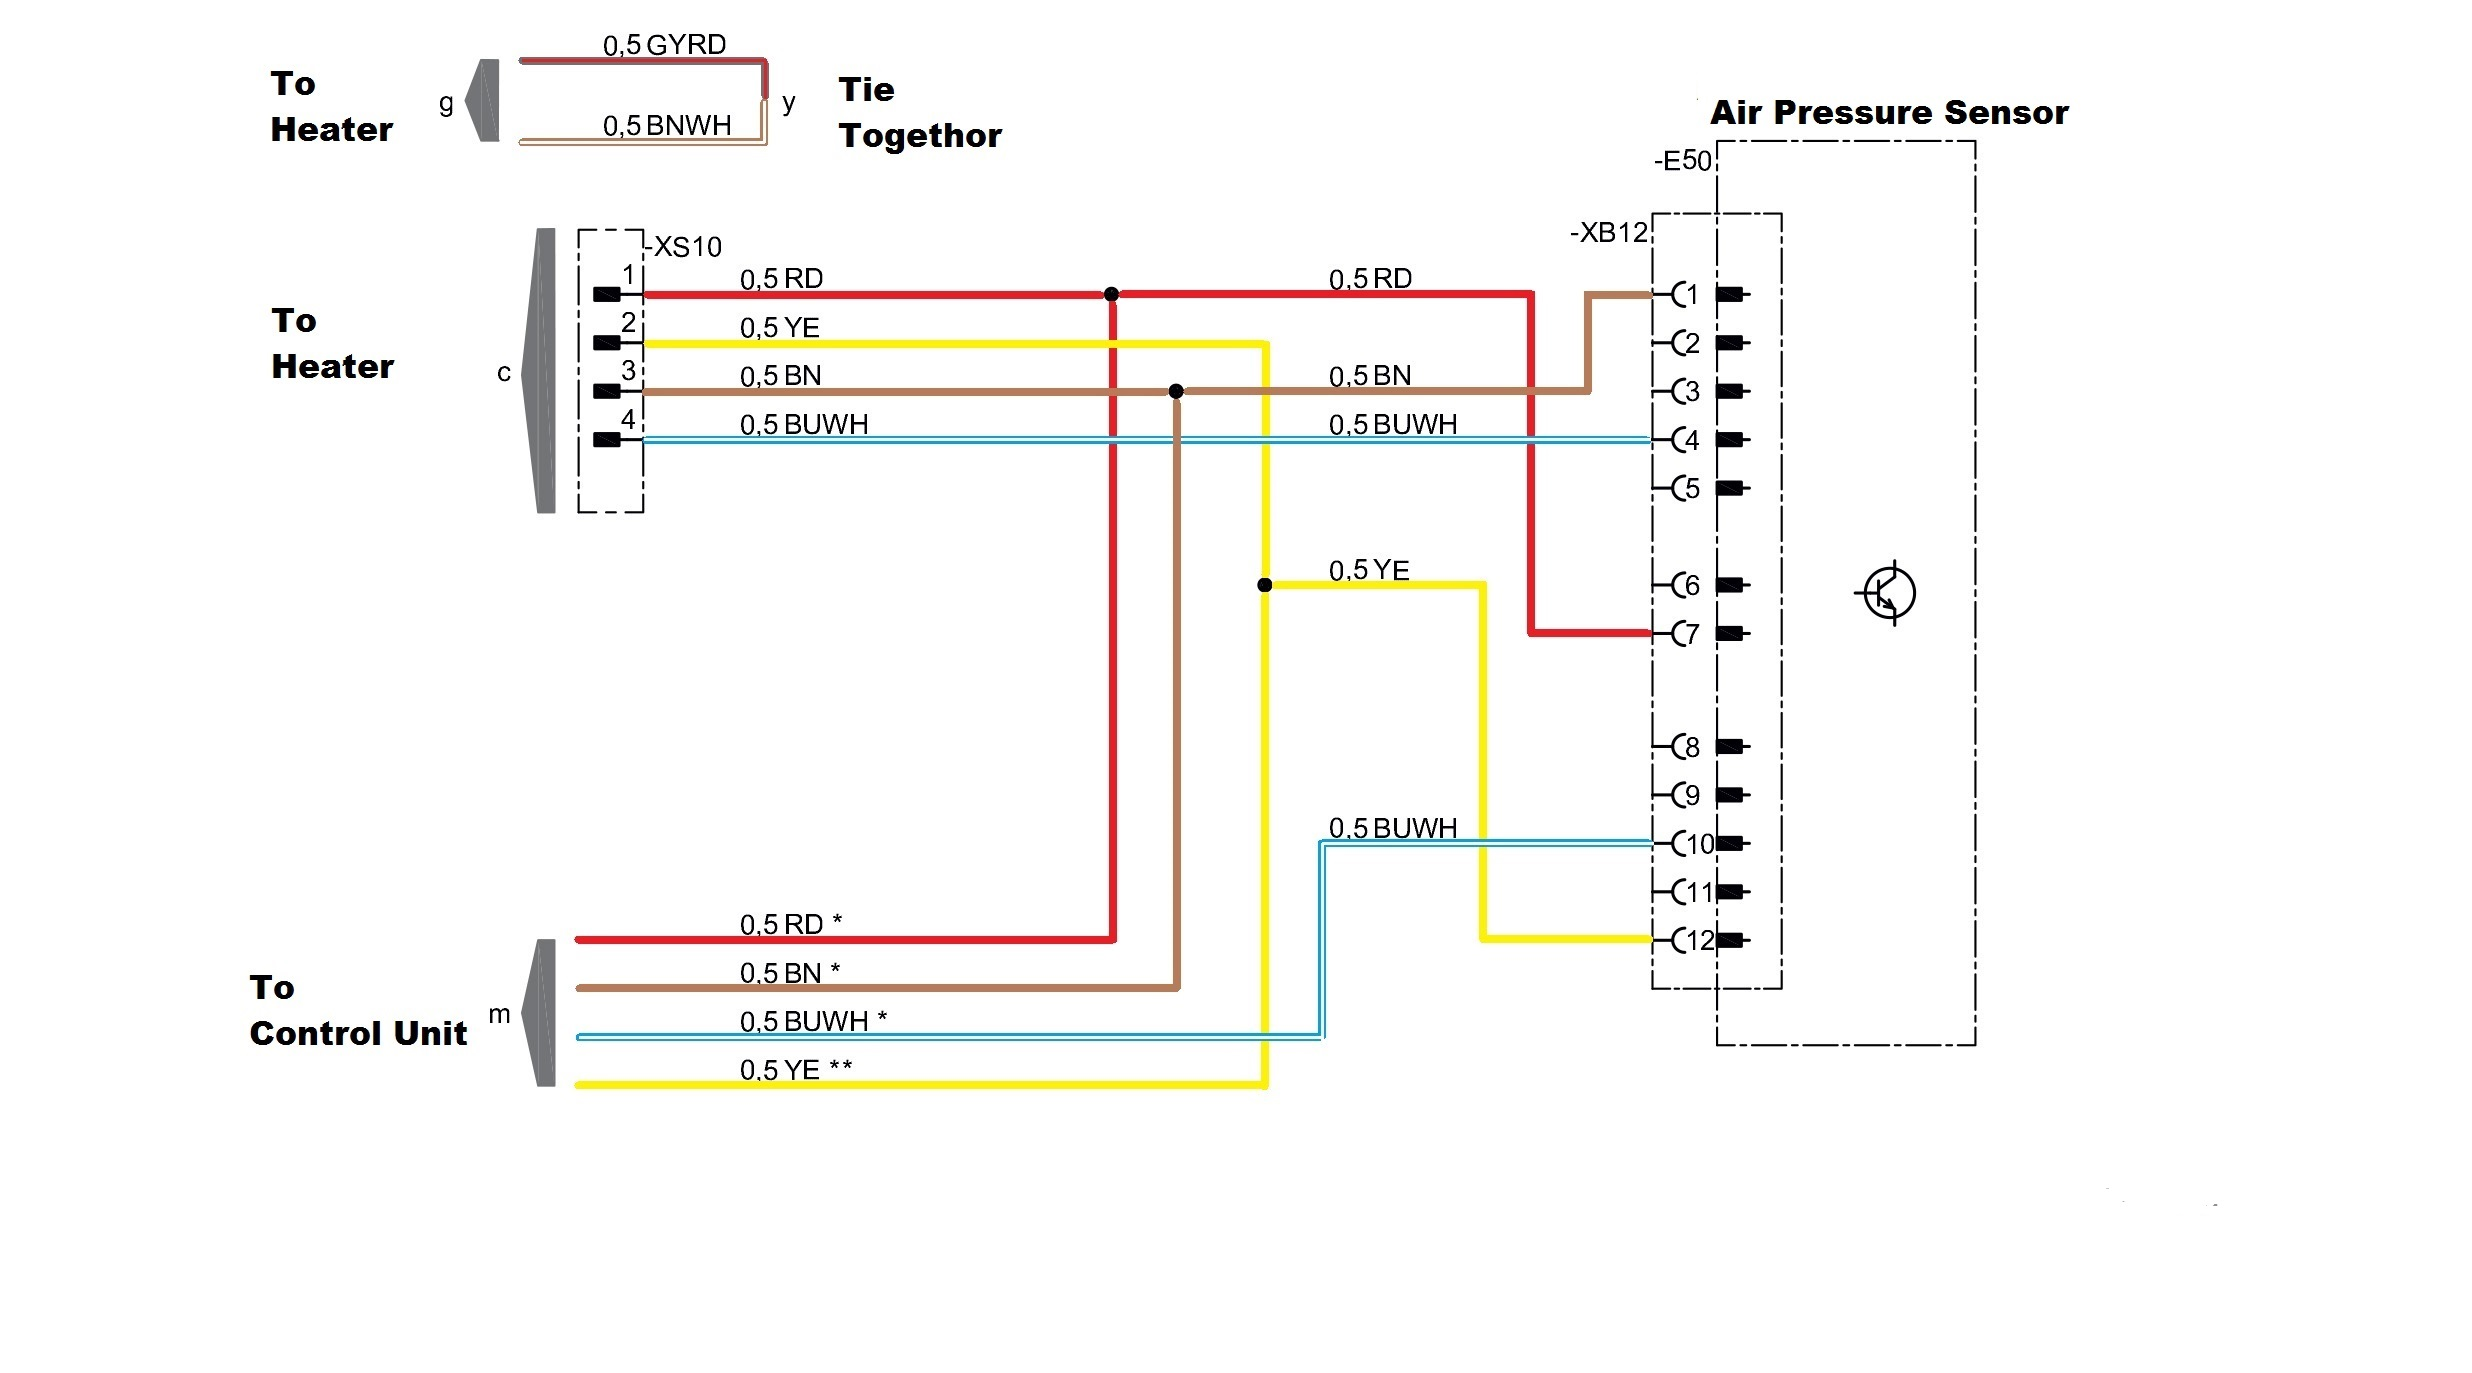 ND_9626] Airtronic D2 Wiring Diagram Schematic WiringKicep Rect Vesi Cette Mohammedshrine Librar Wiring 101